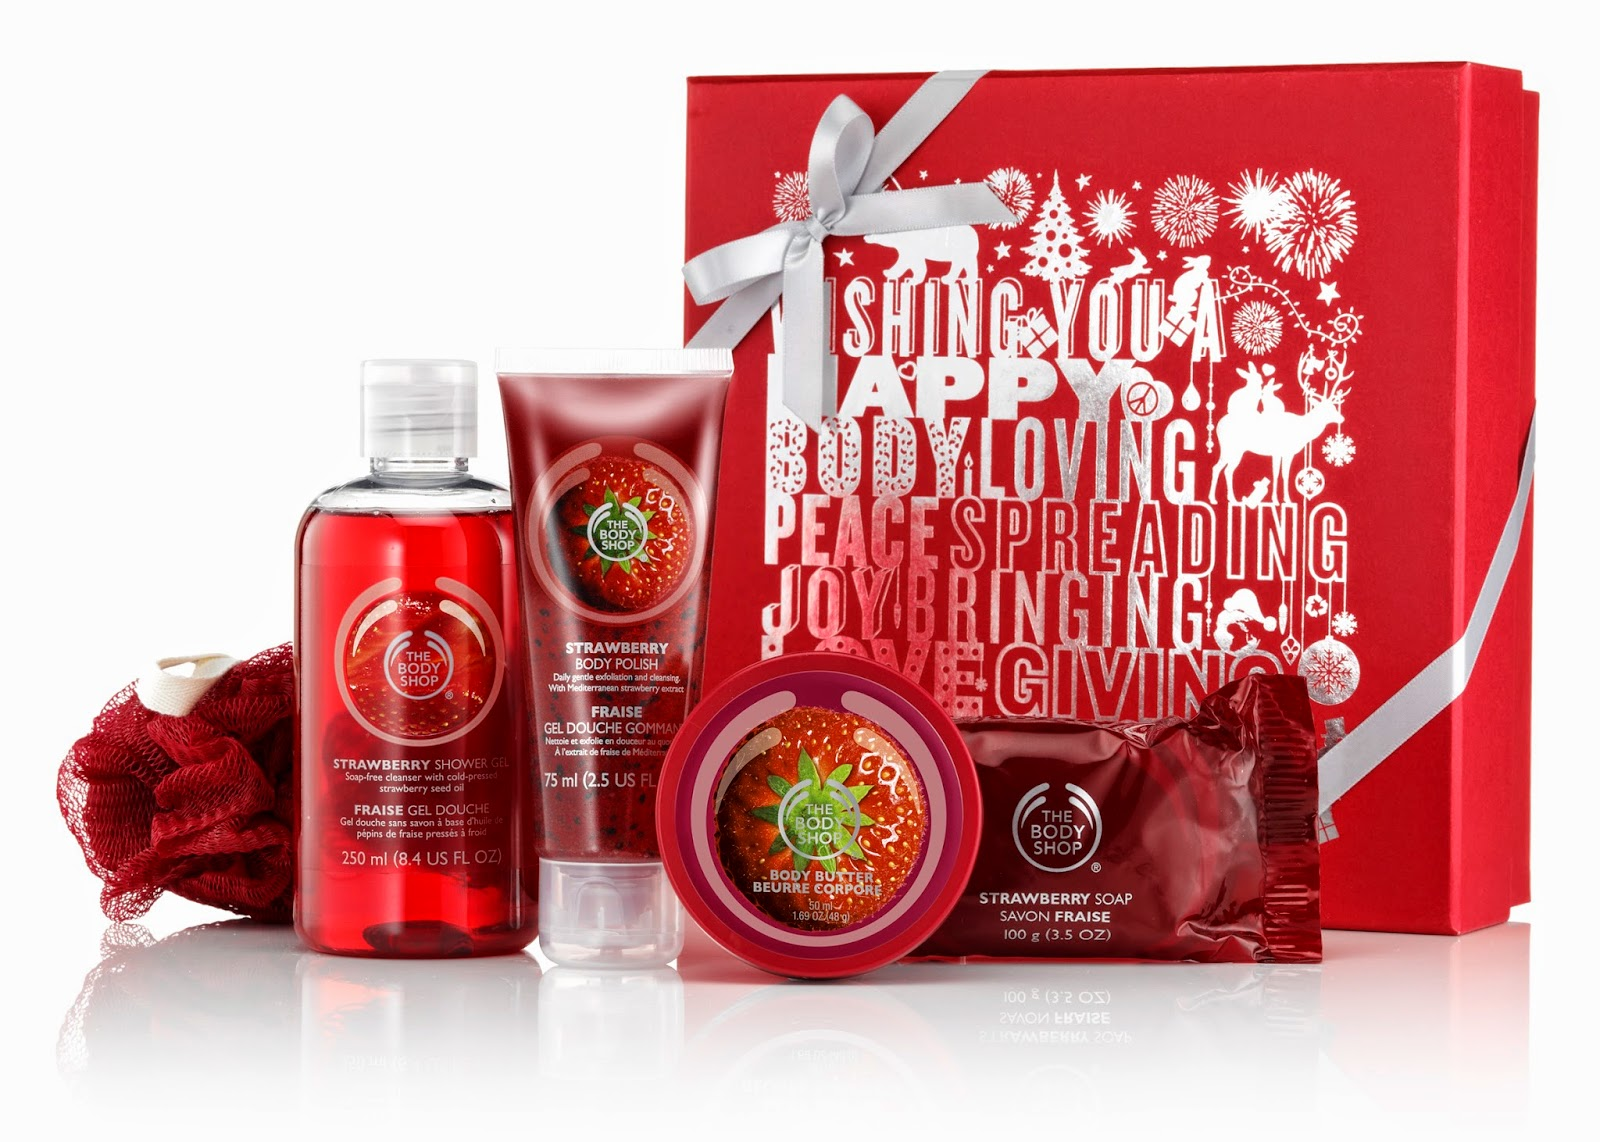 body shop canada Nearly two-thirds of the body shop stores are franchisee-owned and operated it is estimated that the body shop sells a product every 04 seconds with more than 77 million customer transactions worldwide and more than 600 products and 400 accessories.